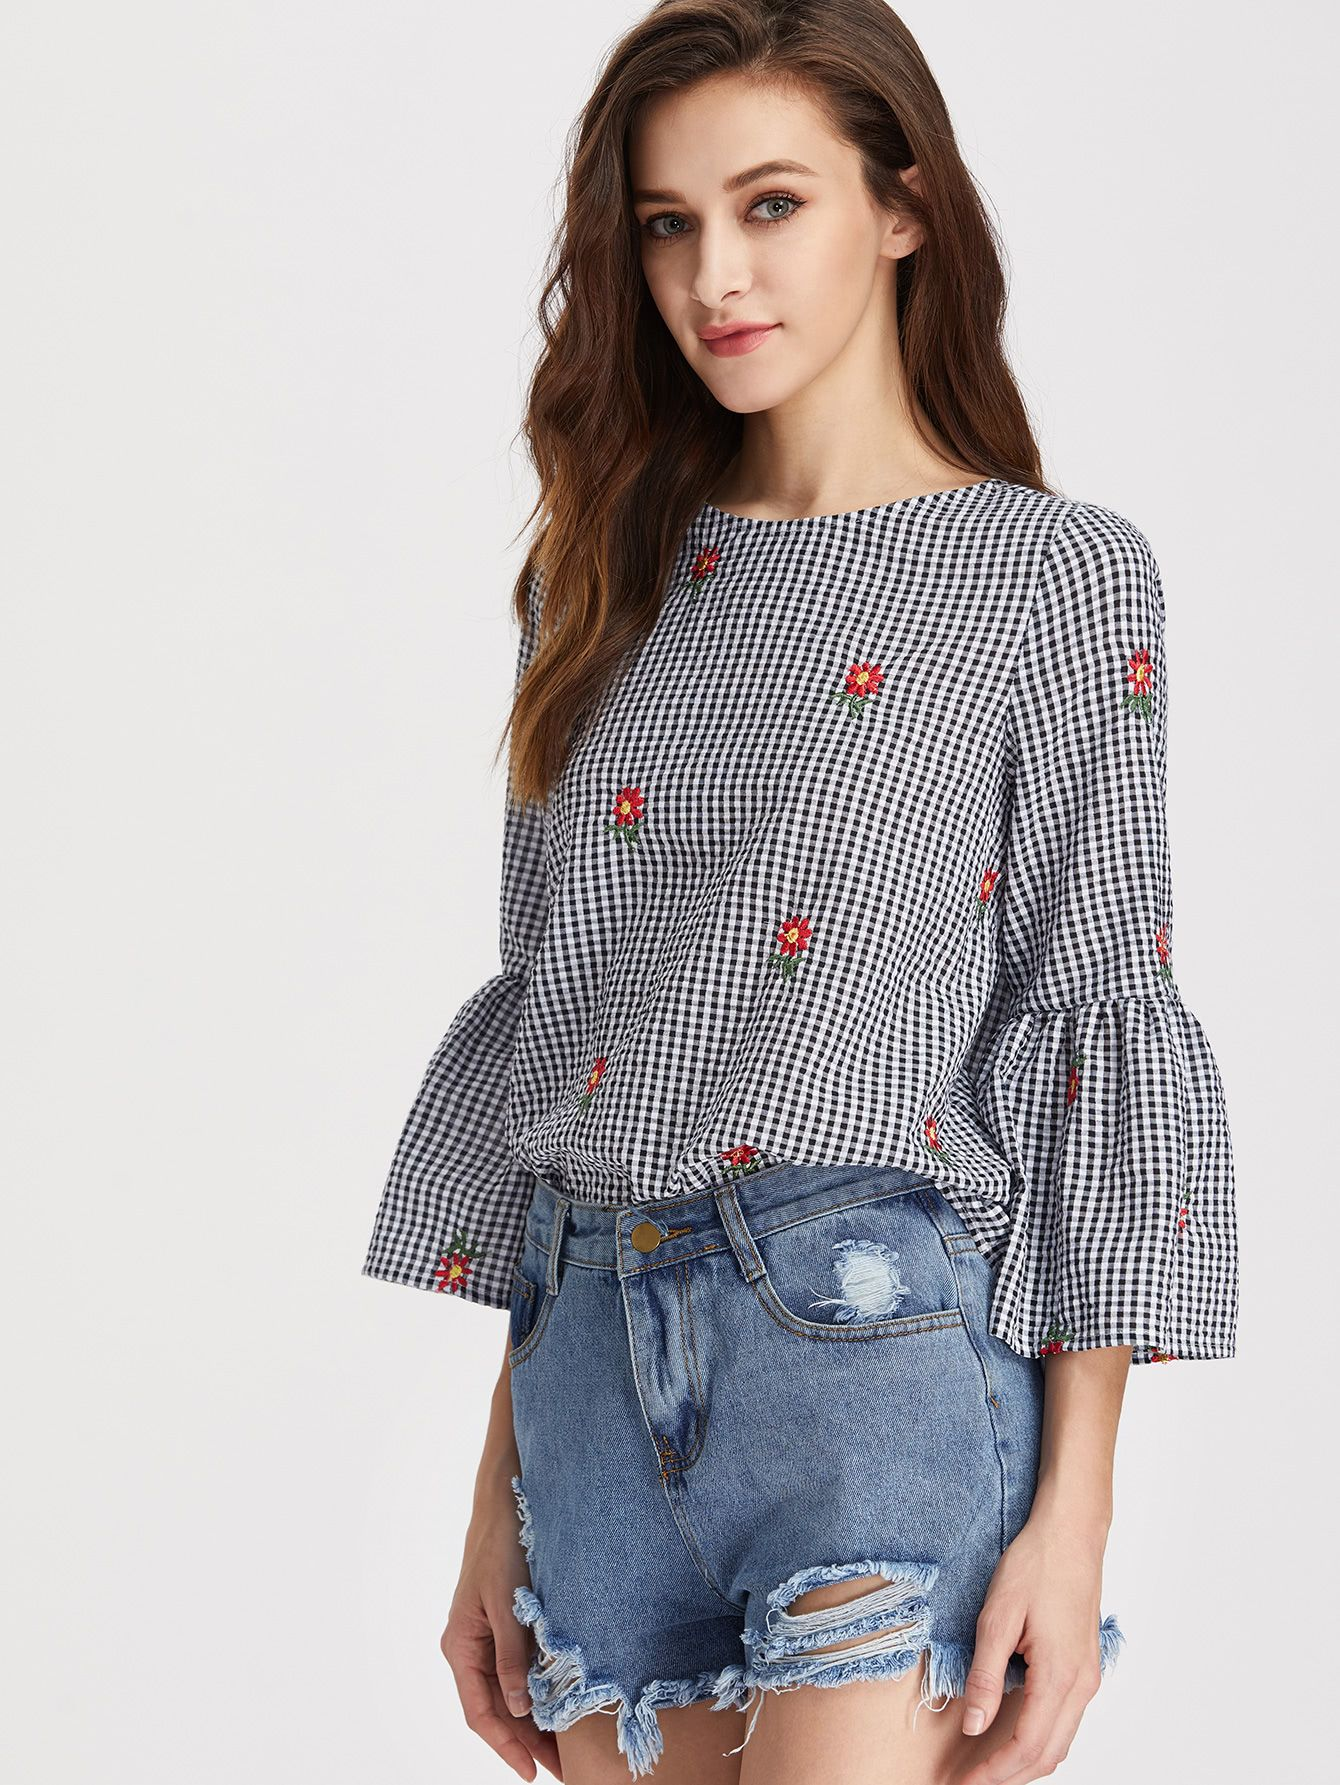 e49f5c4997318d V Cut Tie Back Bell Sleeve Daisy Embroidered Checkered Top -SheIn(Sheinside)